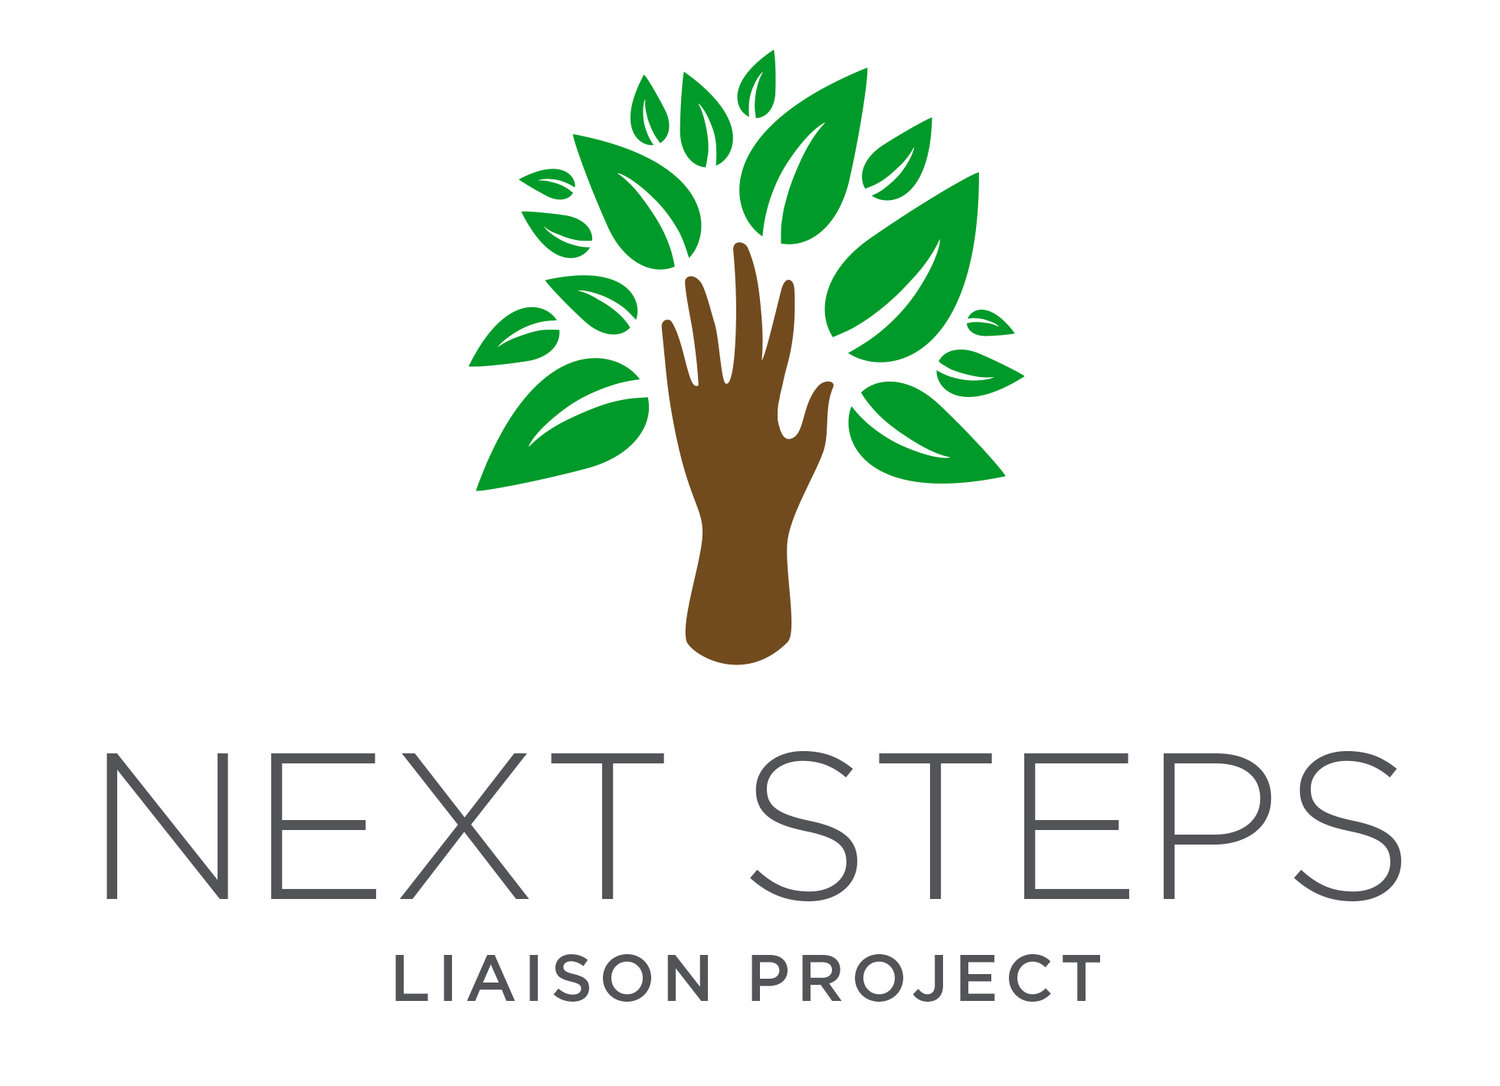 Next Steps Liaison Project